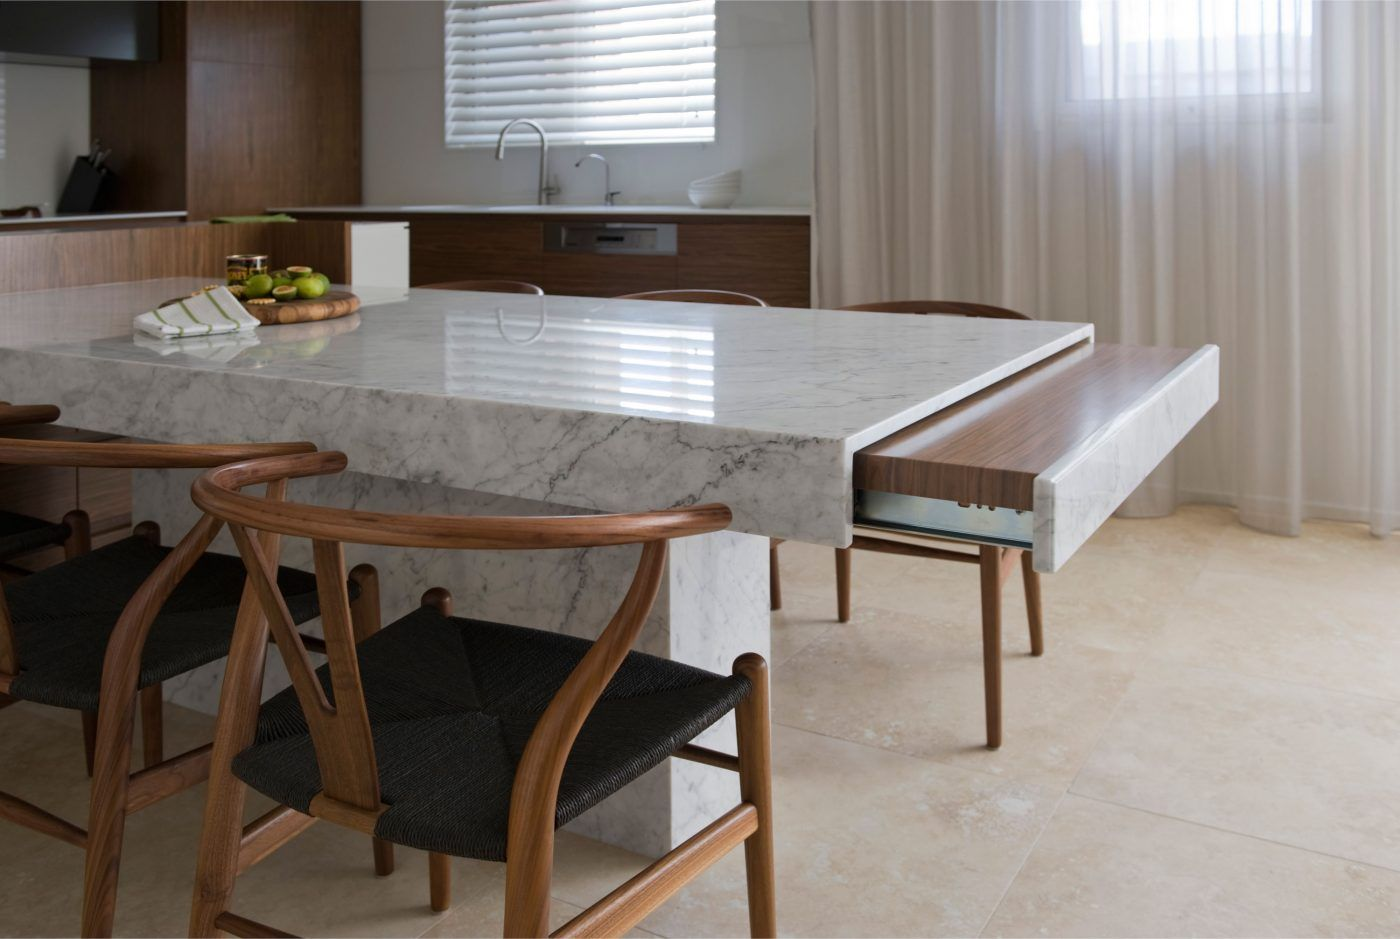 dee20c1ed1c28 rectangle white granite dining table with storage combined brown room  wooden chairs black seat ceramics flooring amazing top modern looks for  furniture hire ...